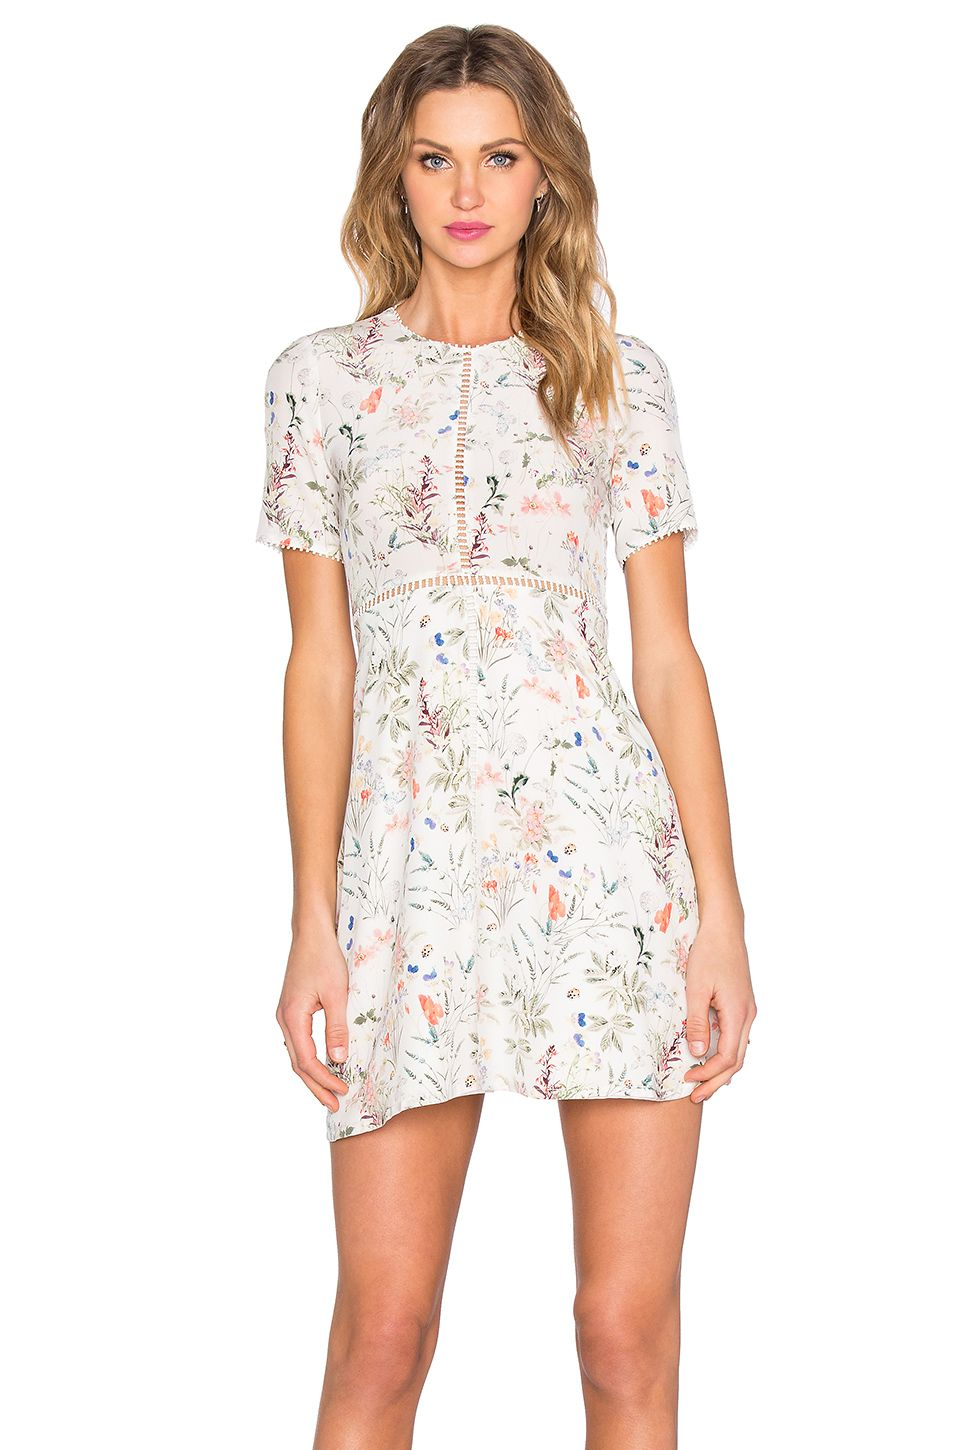 The Kooples Floral Dress in White | Stylin\' by Kate Altmann ...